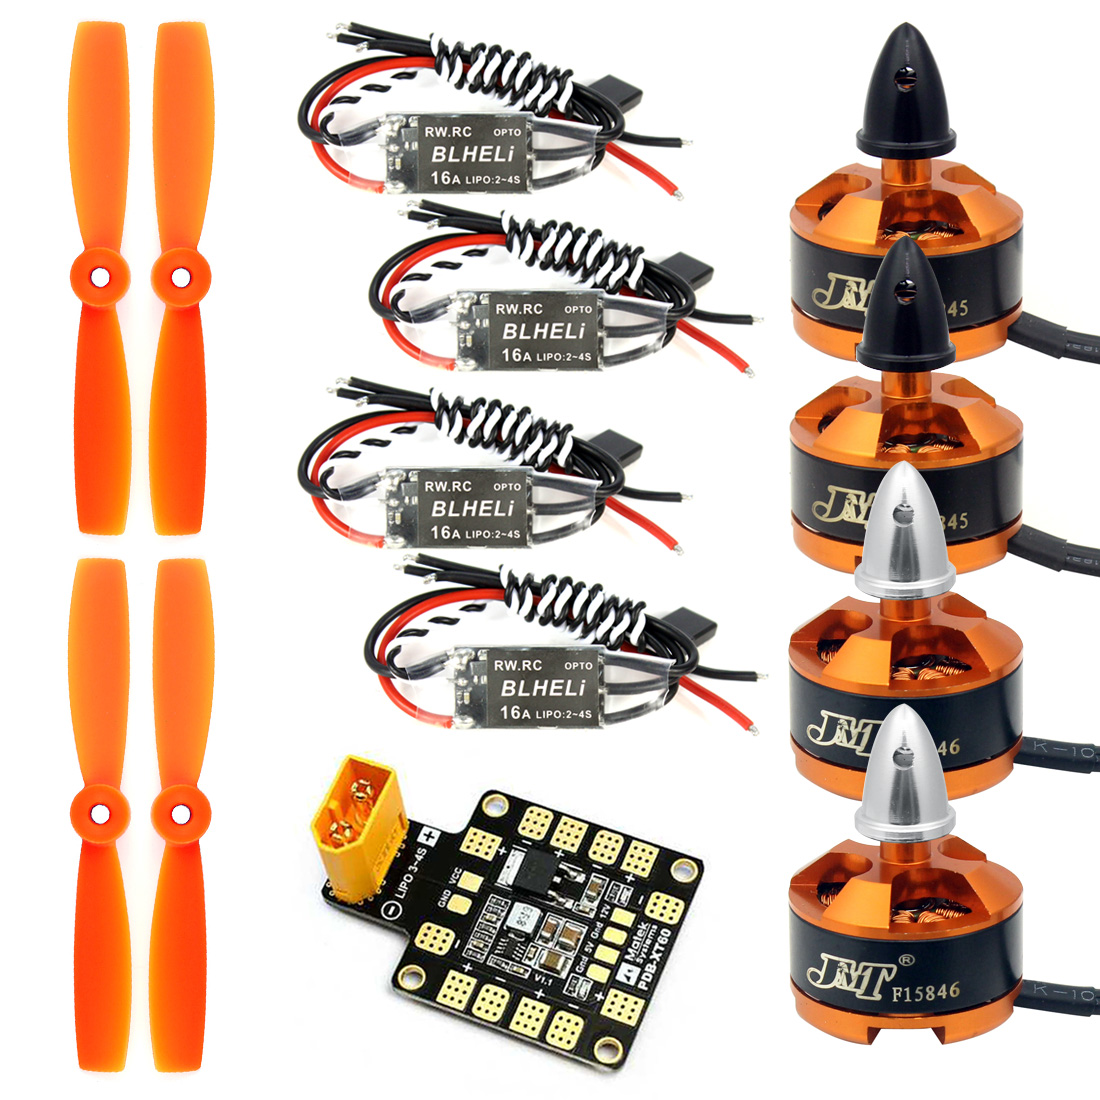 Racing Quadcopter 1806 2400KV Brushless Motor Mini BLHeli OPTO 16A ESC 5045 Propellers Paddles DIY for Mini 250 210 RC Drone FPV jmt 1806 2400kv clockwise cw ccw brushless motor mini multi rotor motor for 250 across fpv 260 rc quadcopter aircraft